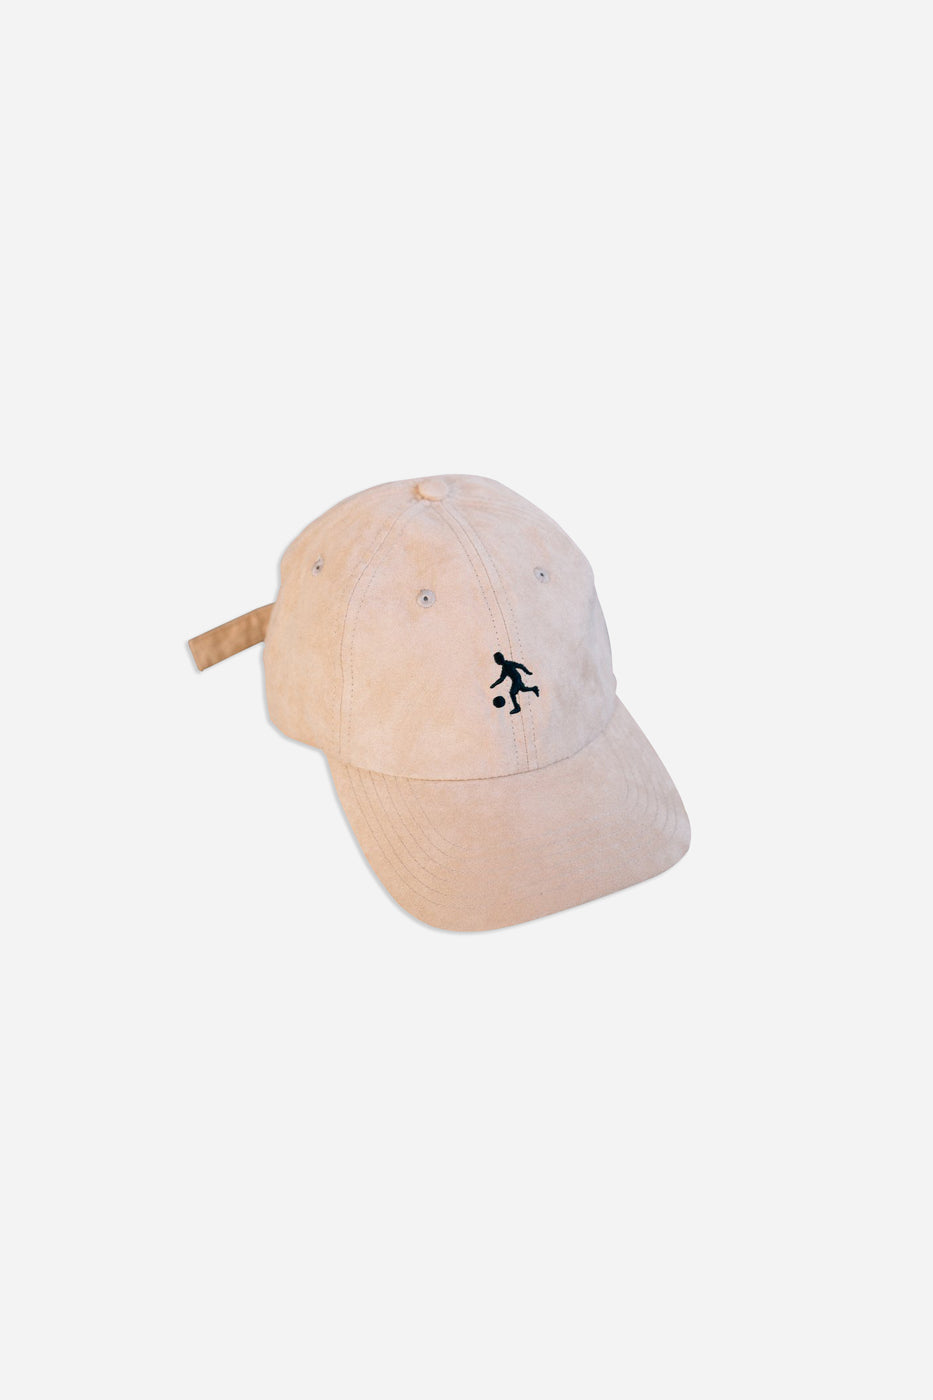 PLAYER ICON POLO CAP SAND